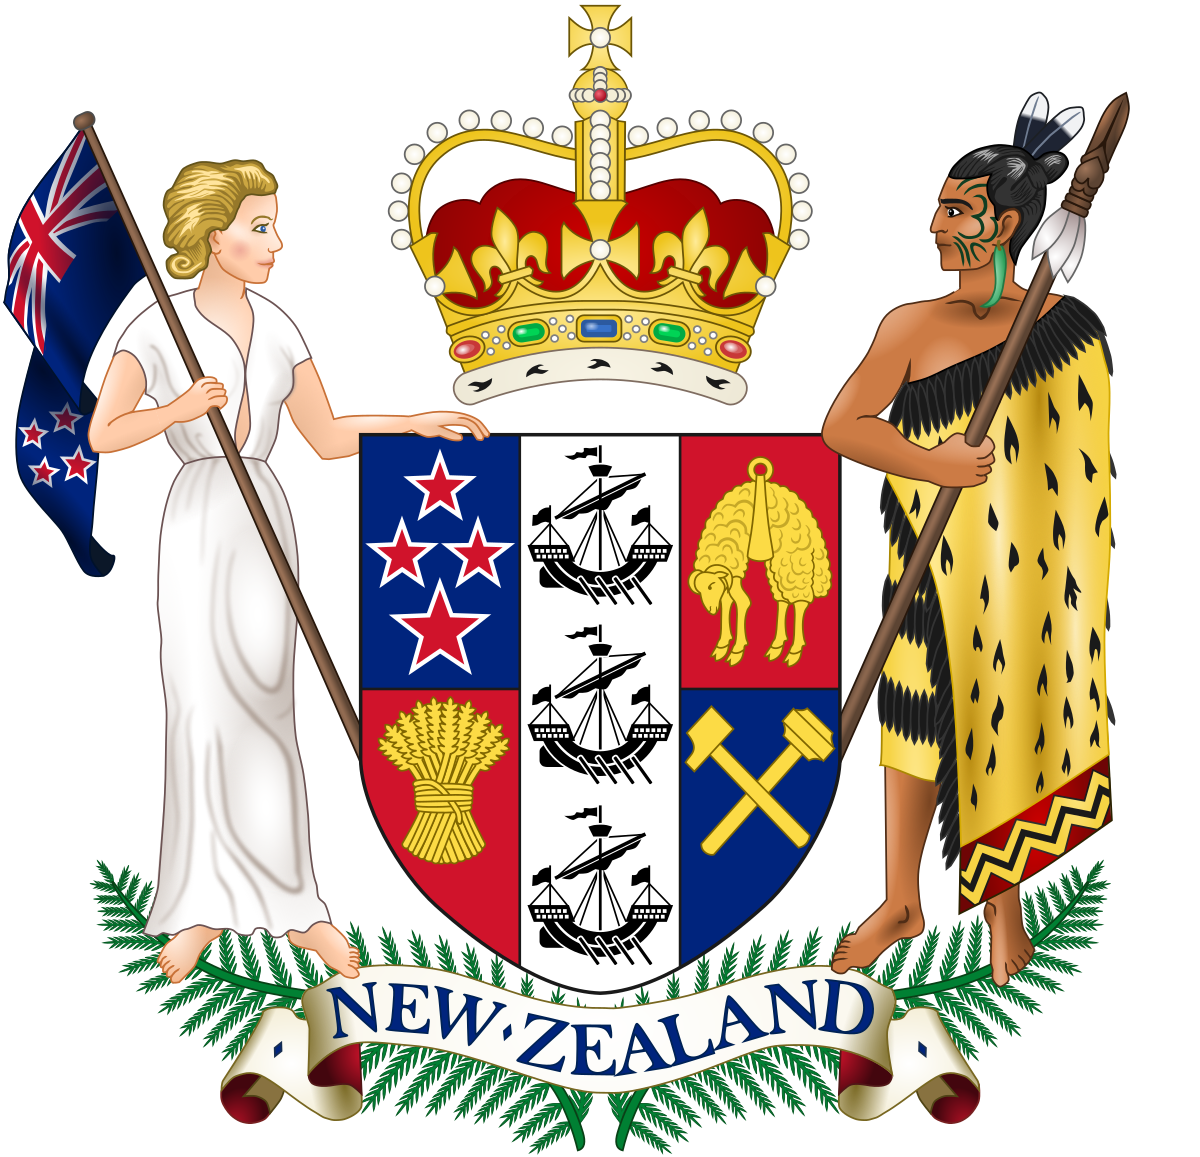 Politics of new zealand. Democracy clipart government structure